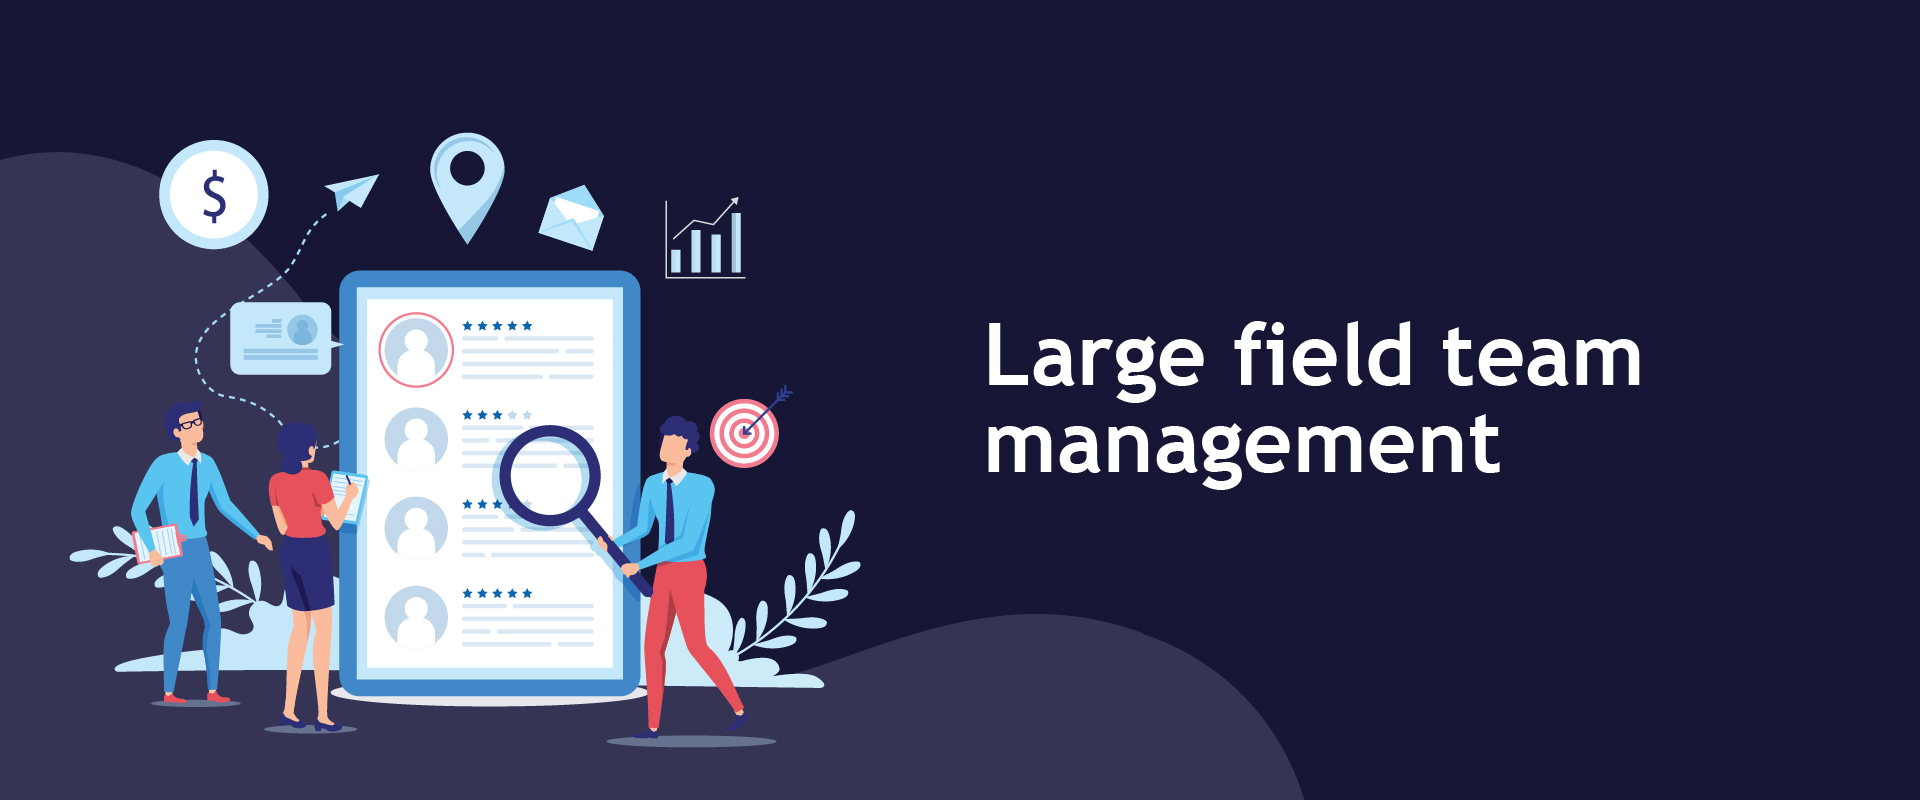 How Bsharp does it: Large field team management